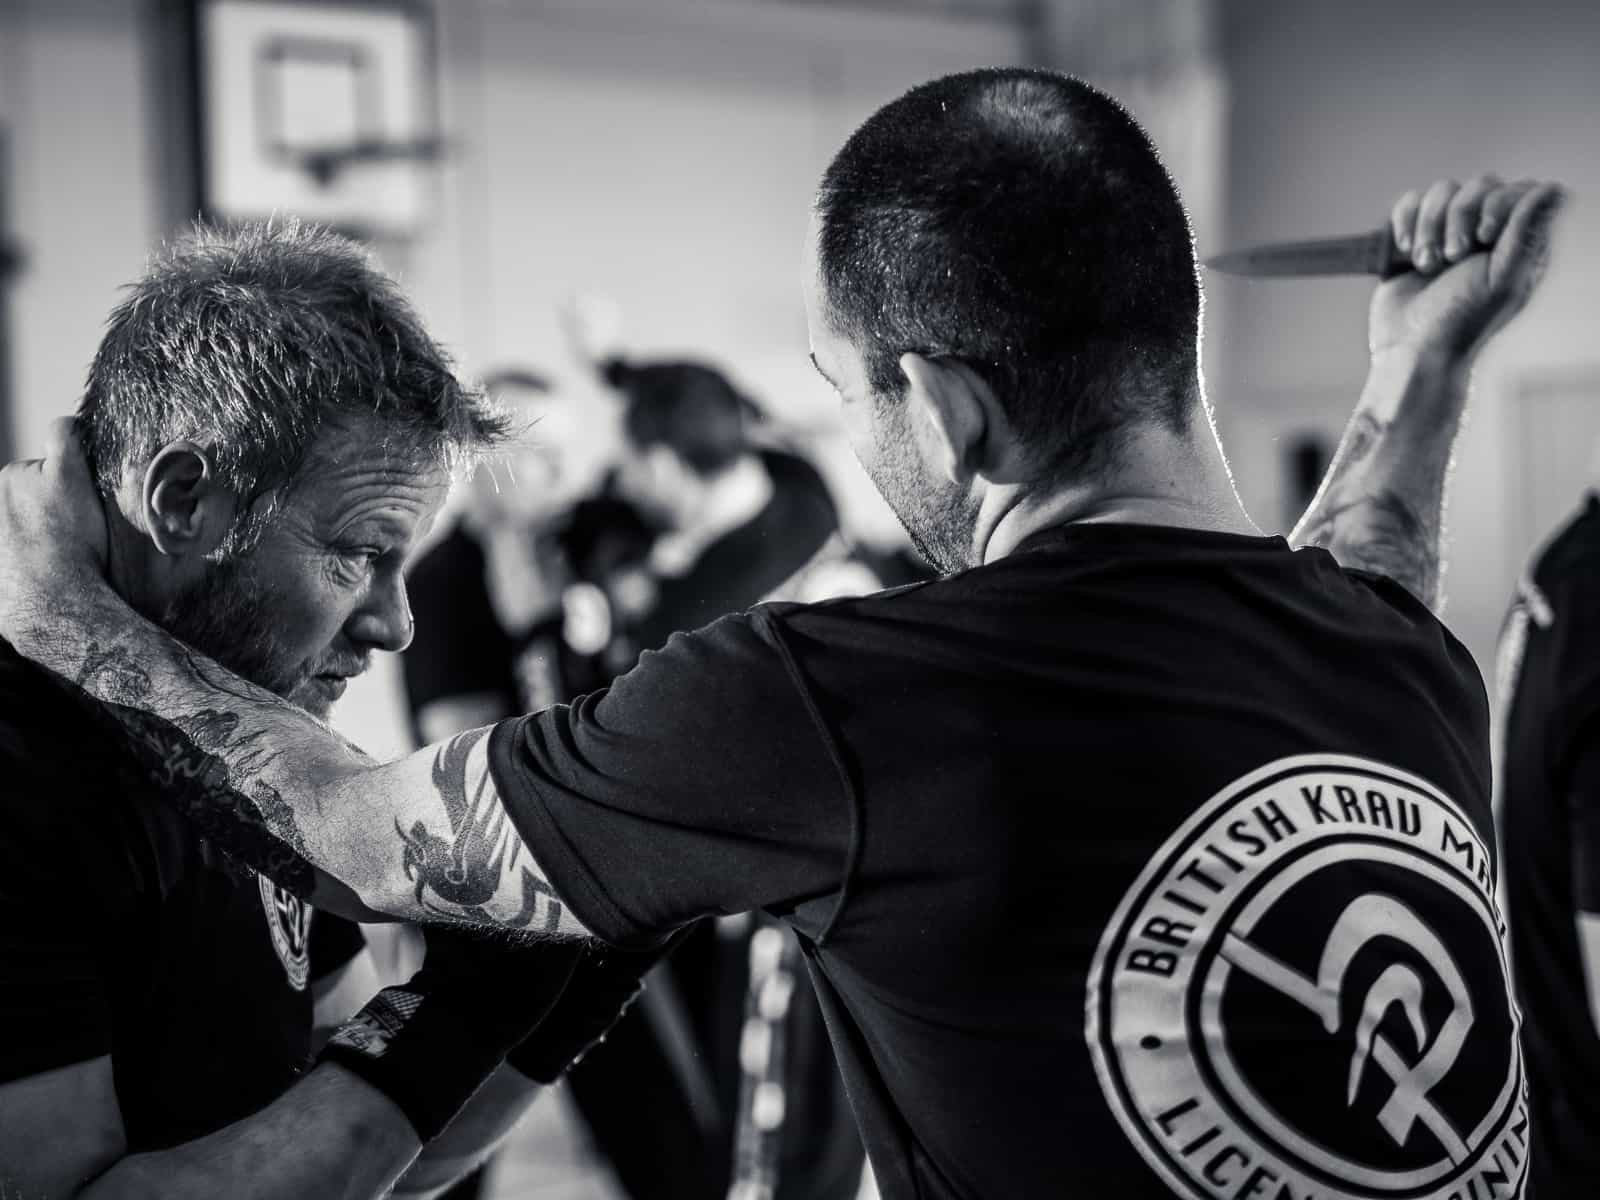 1600x1200 Swindon Krav Maga - Our take on Krav Maga - British Krav Maga